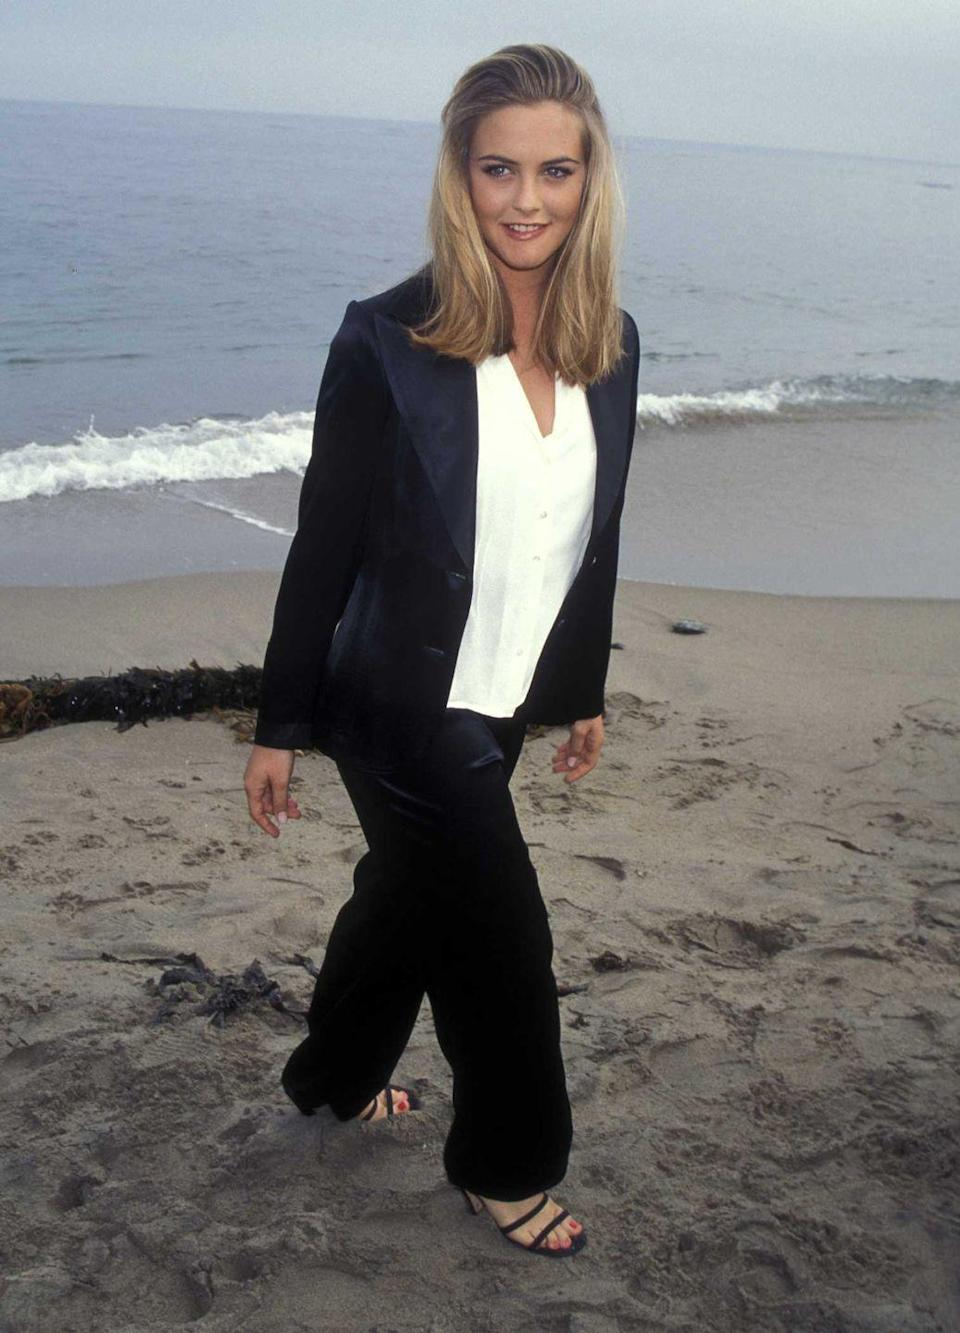 <p>Alicia Silverstone seen walking in the sand at the <em>Clueless</em> premiere, which took place on the beach in Malibu, California in 1995. </p>